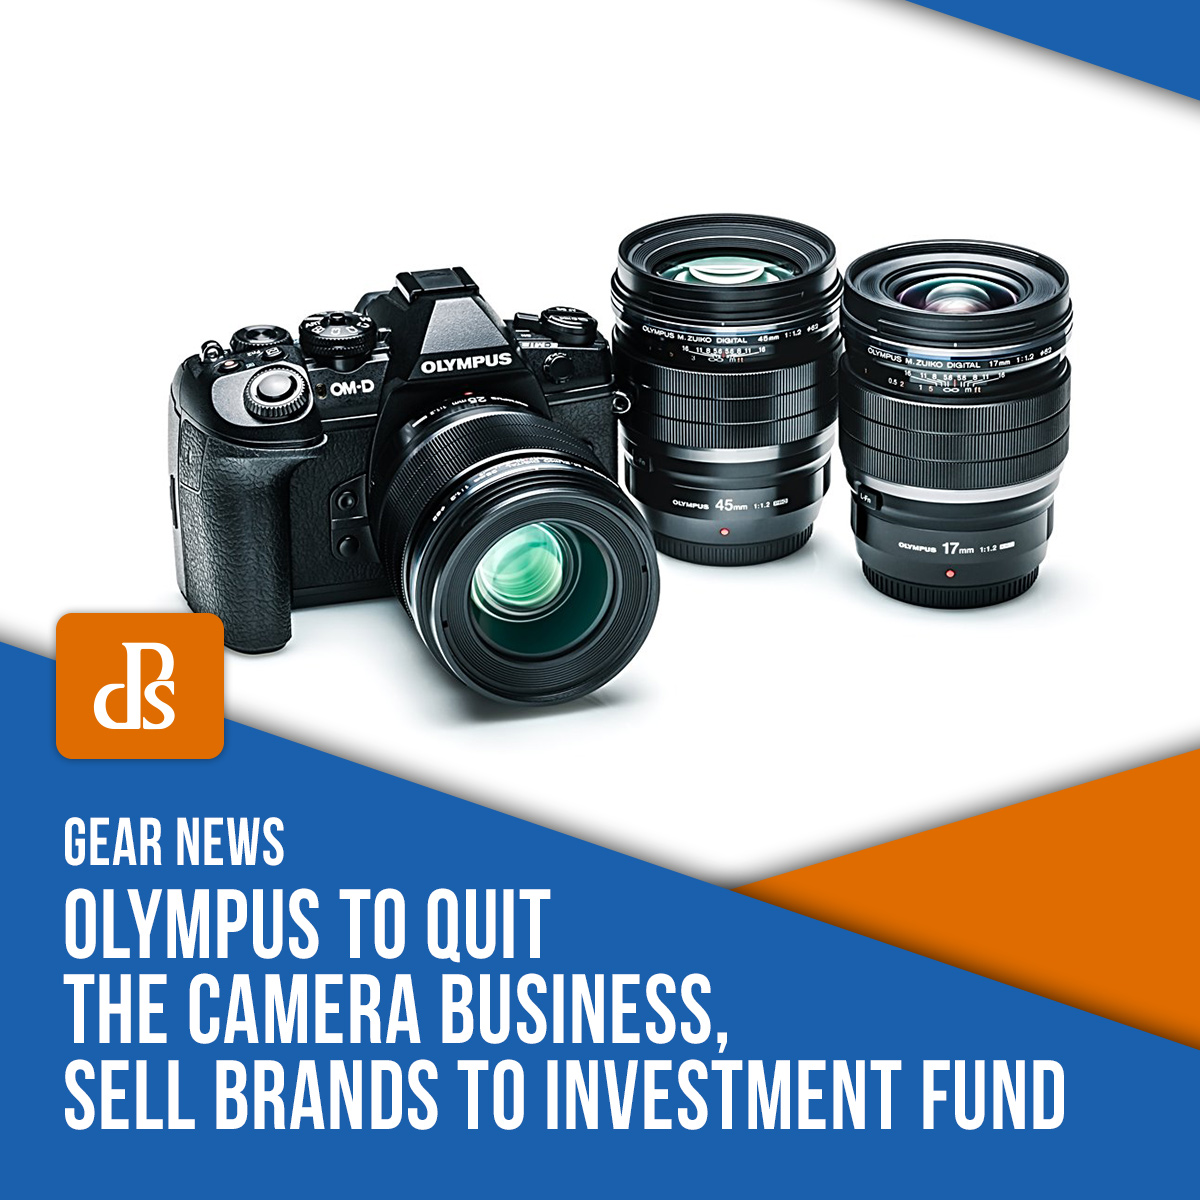 dps-olympus-to-quit-camera-business